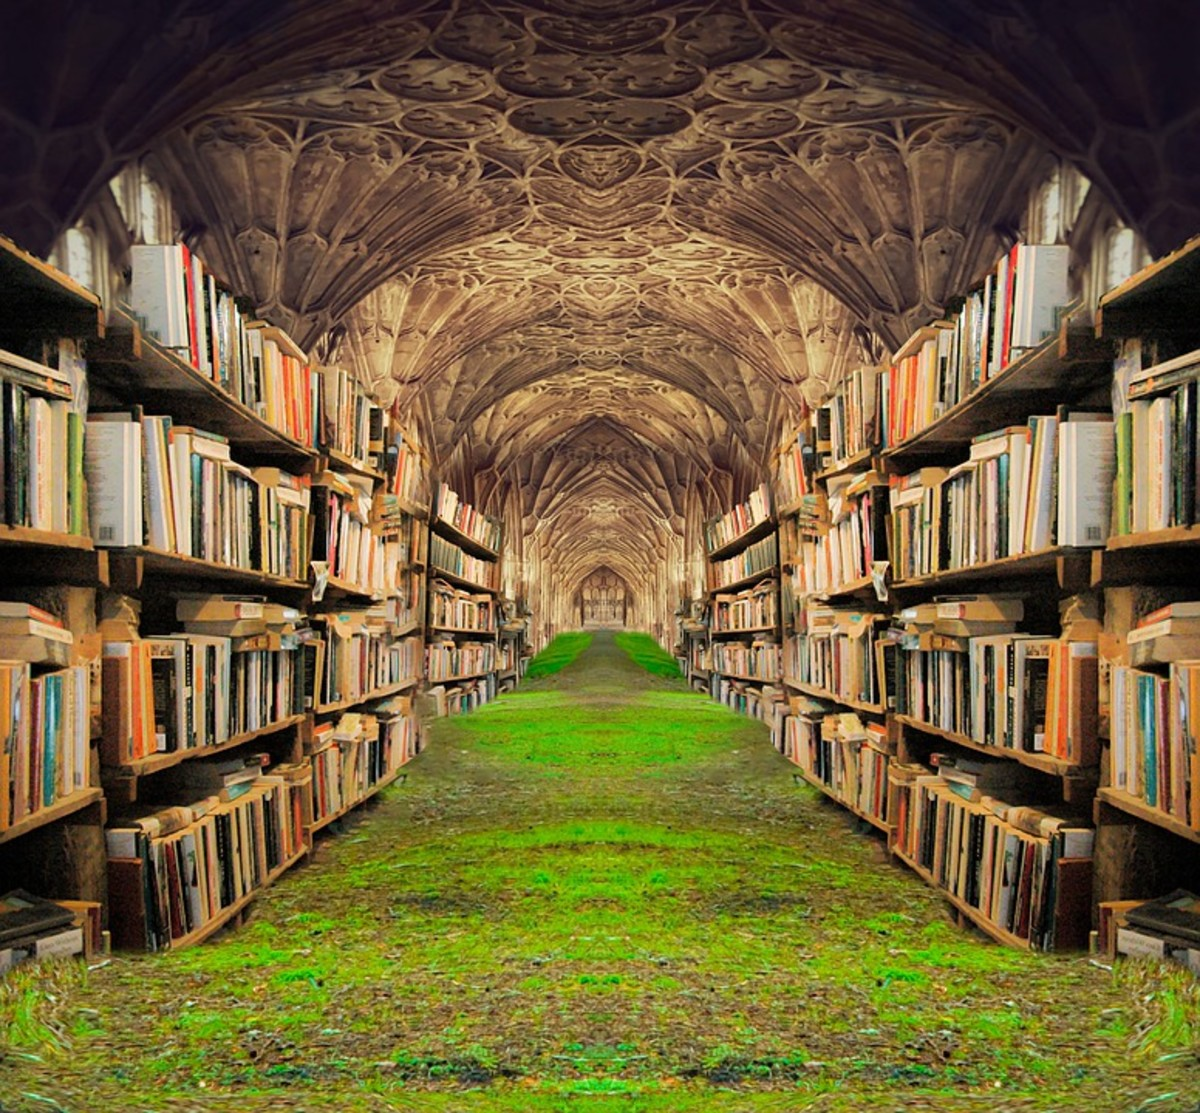 Books  provide you with an escape of realty